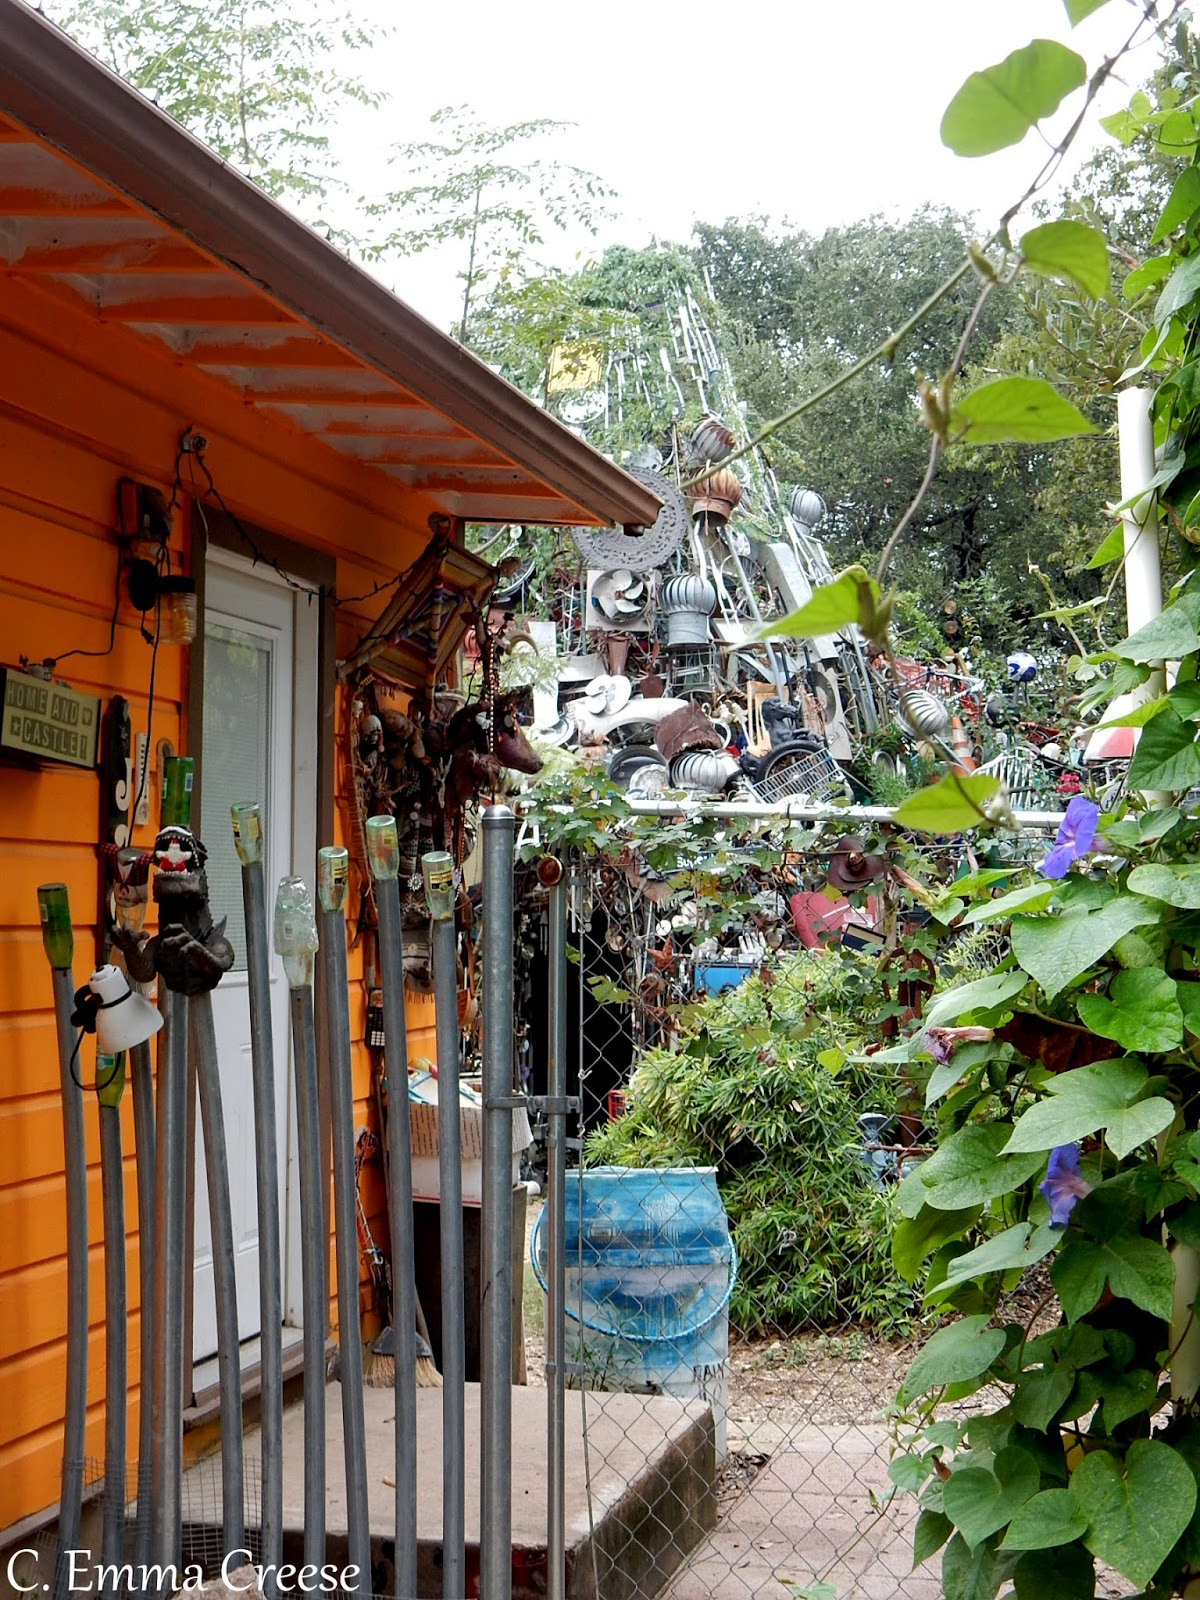 Cathedral of Junk - Keep Austin Weird - 9 of our favourite things to do in Austin, Texas Adventures of a London Kiwi